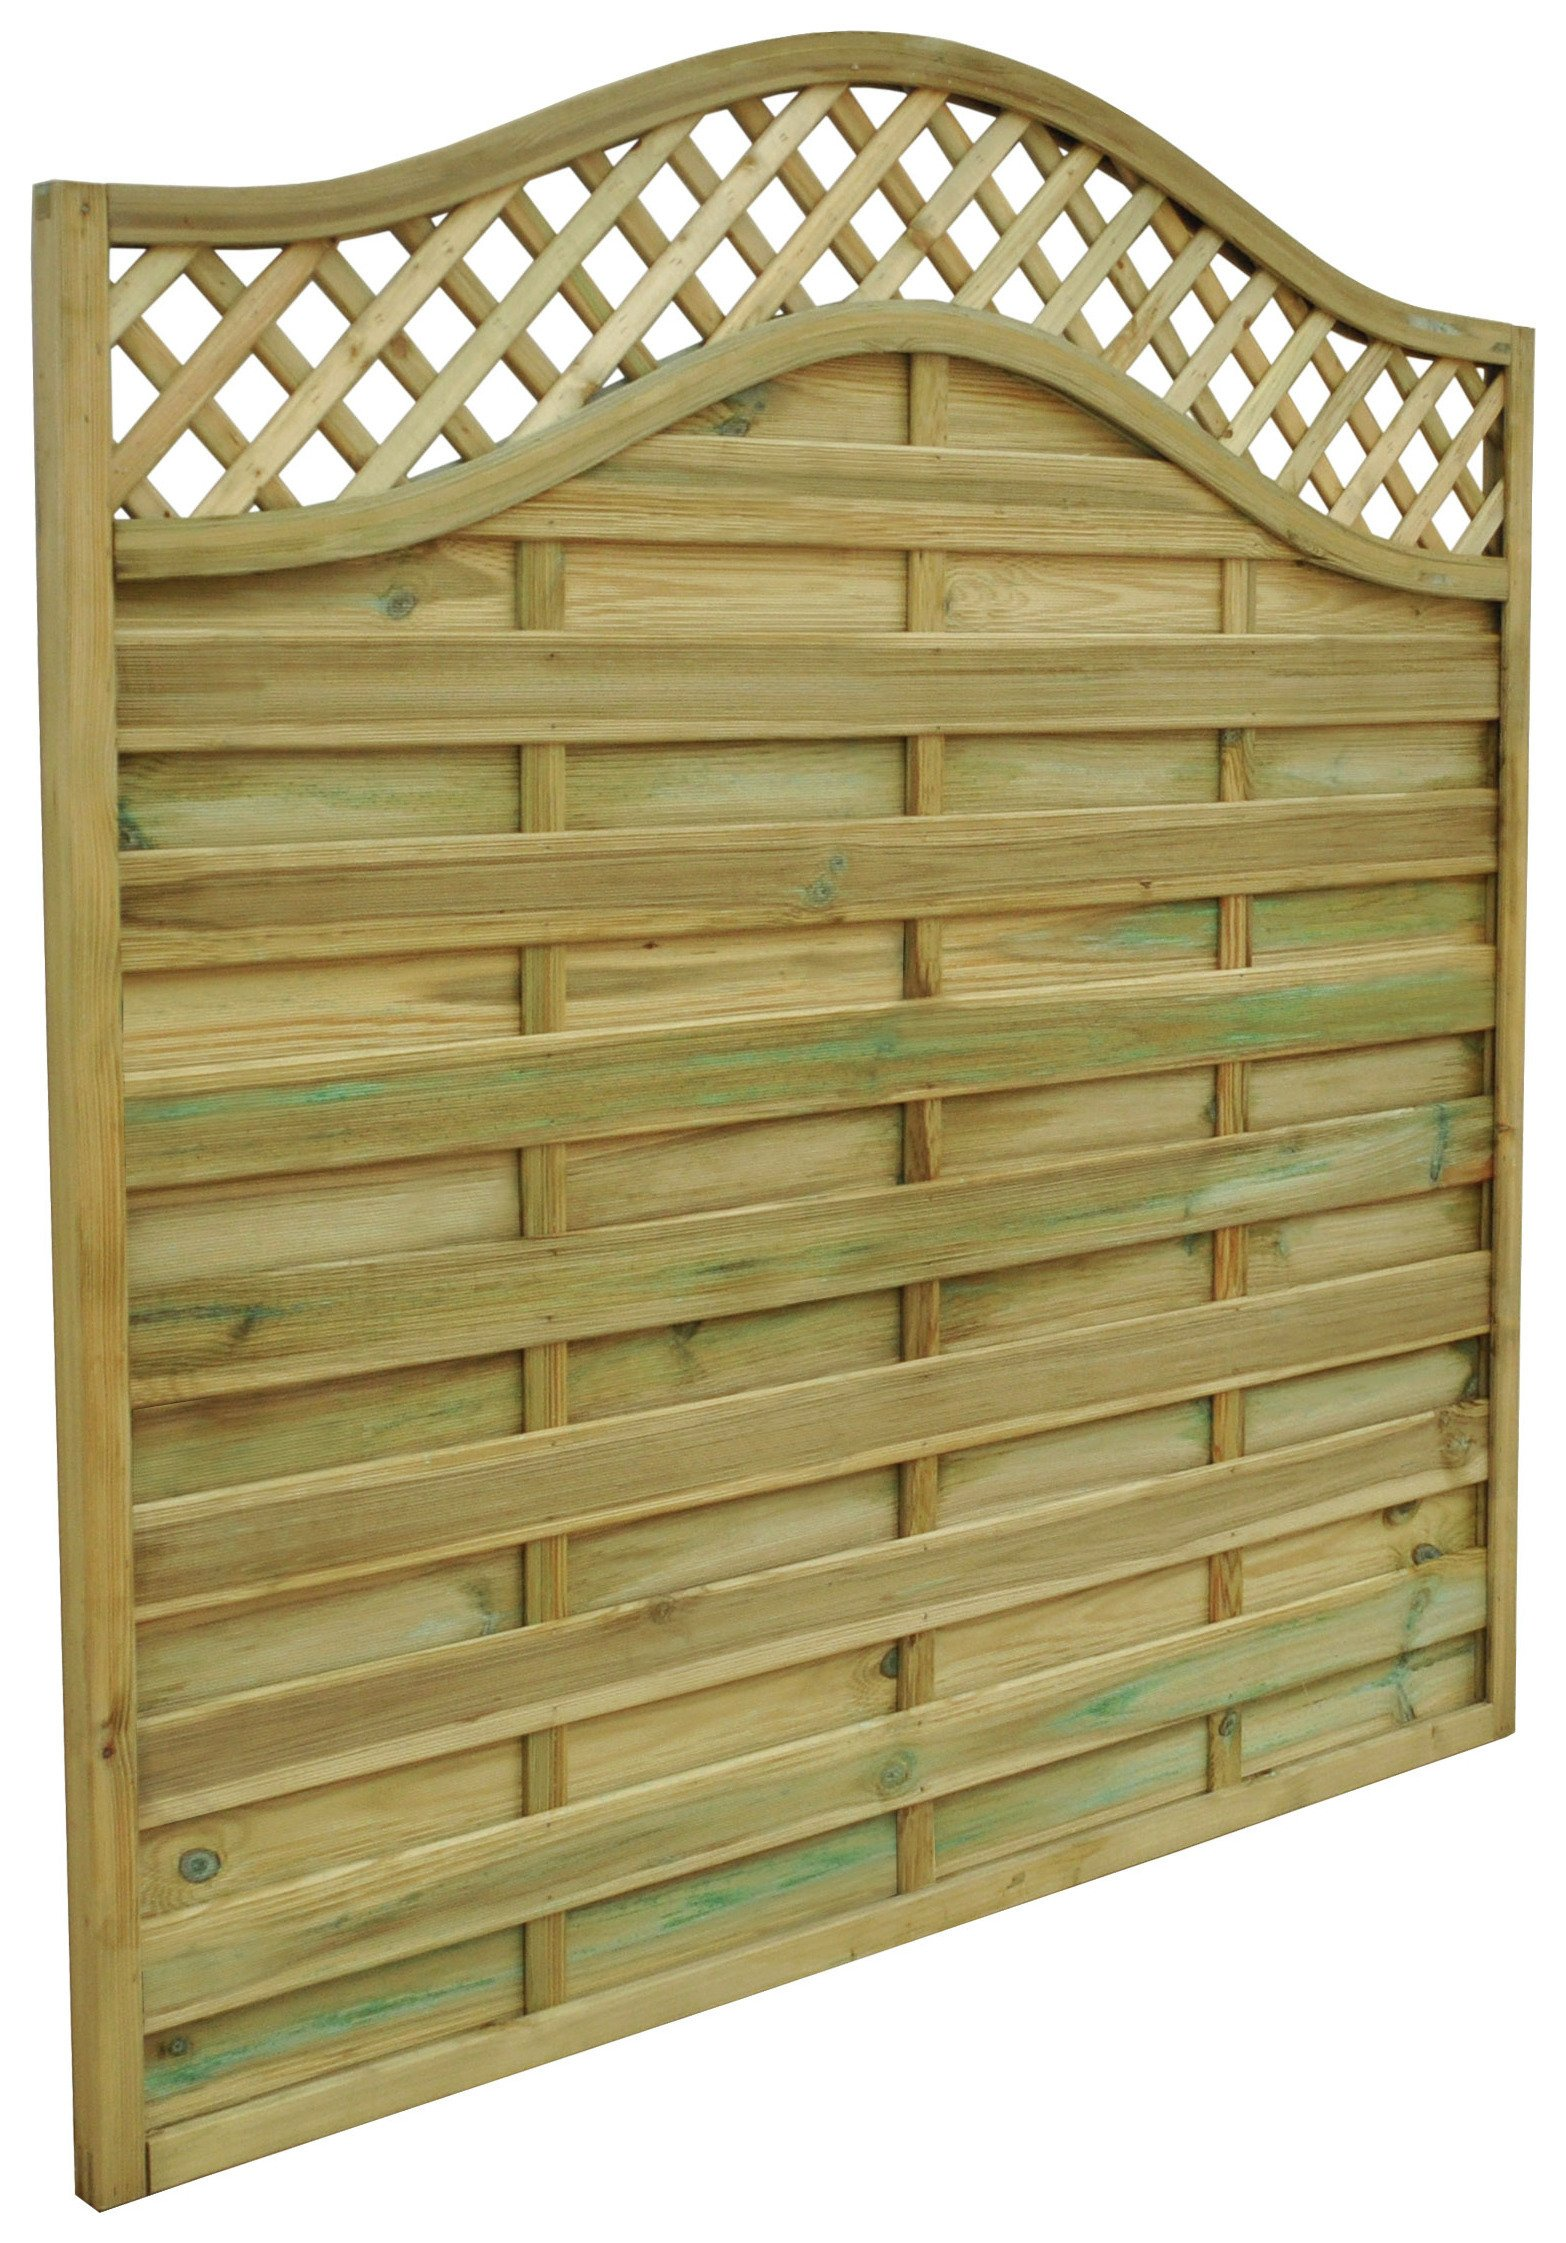 Forest 1.5m Prague Fence Panel - Pack of 20. lowest price